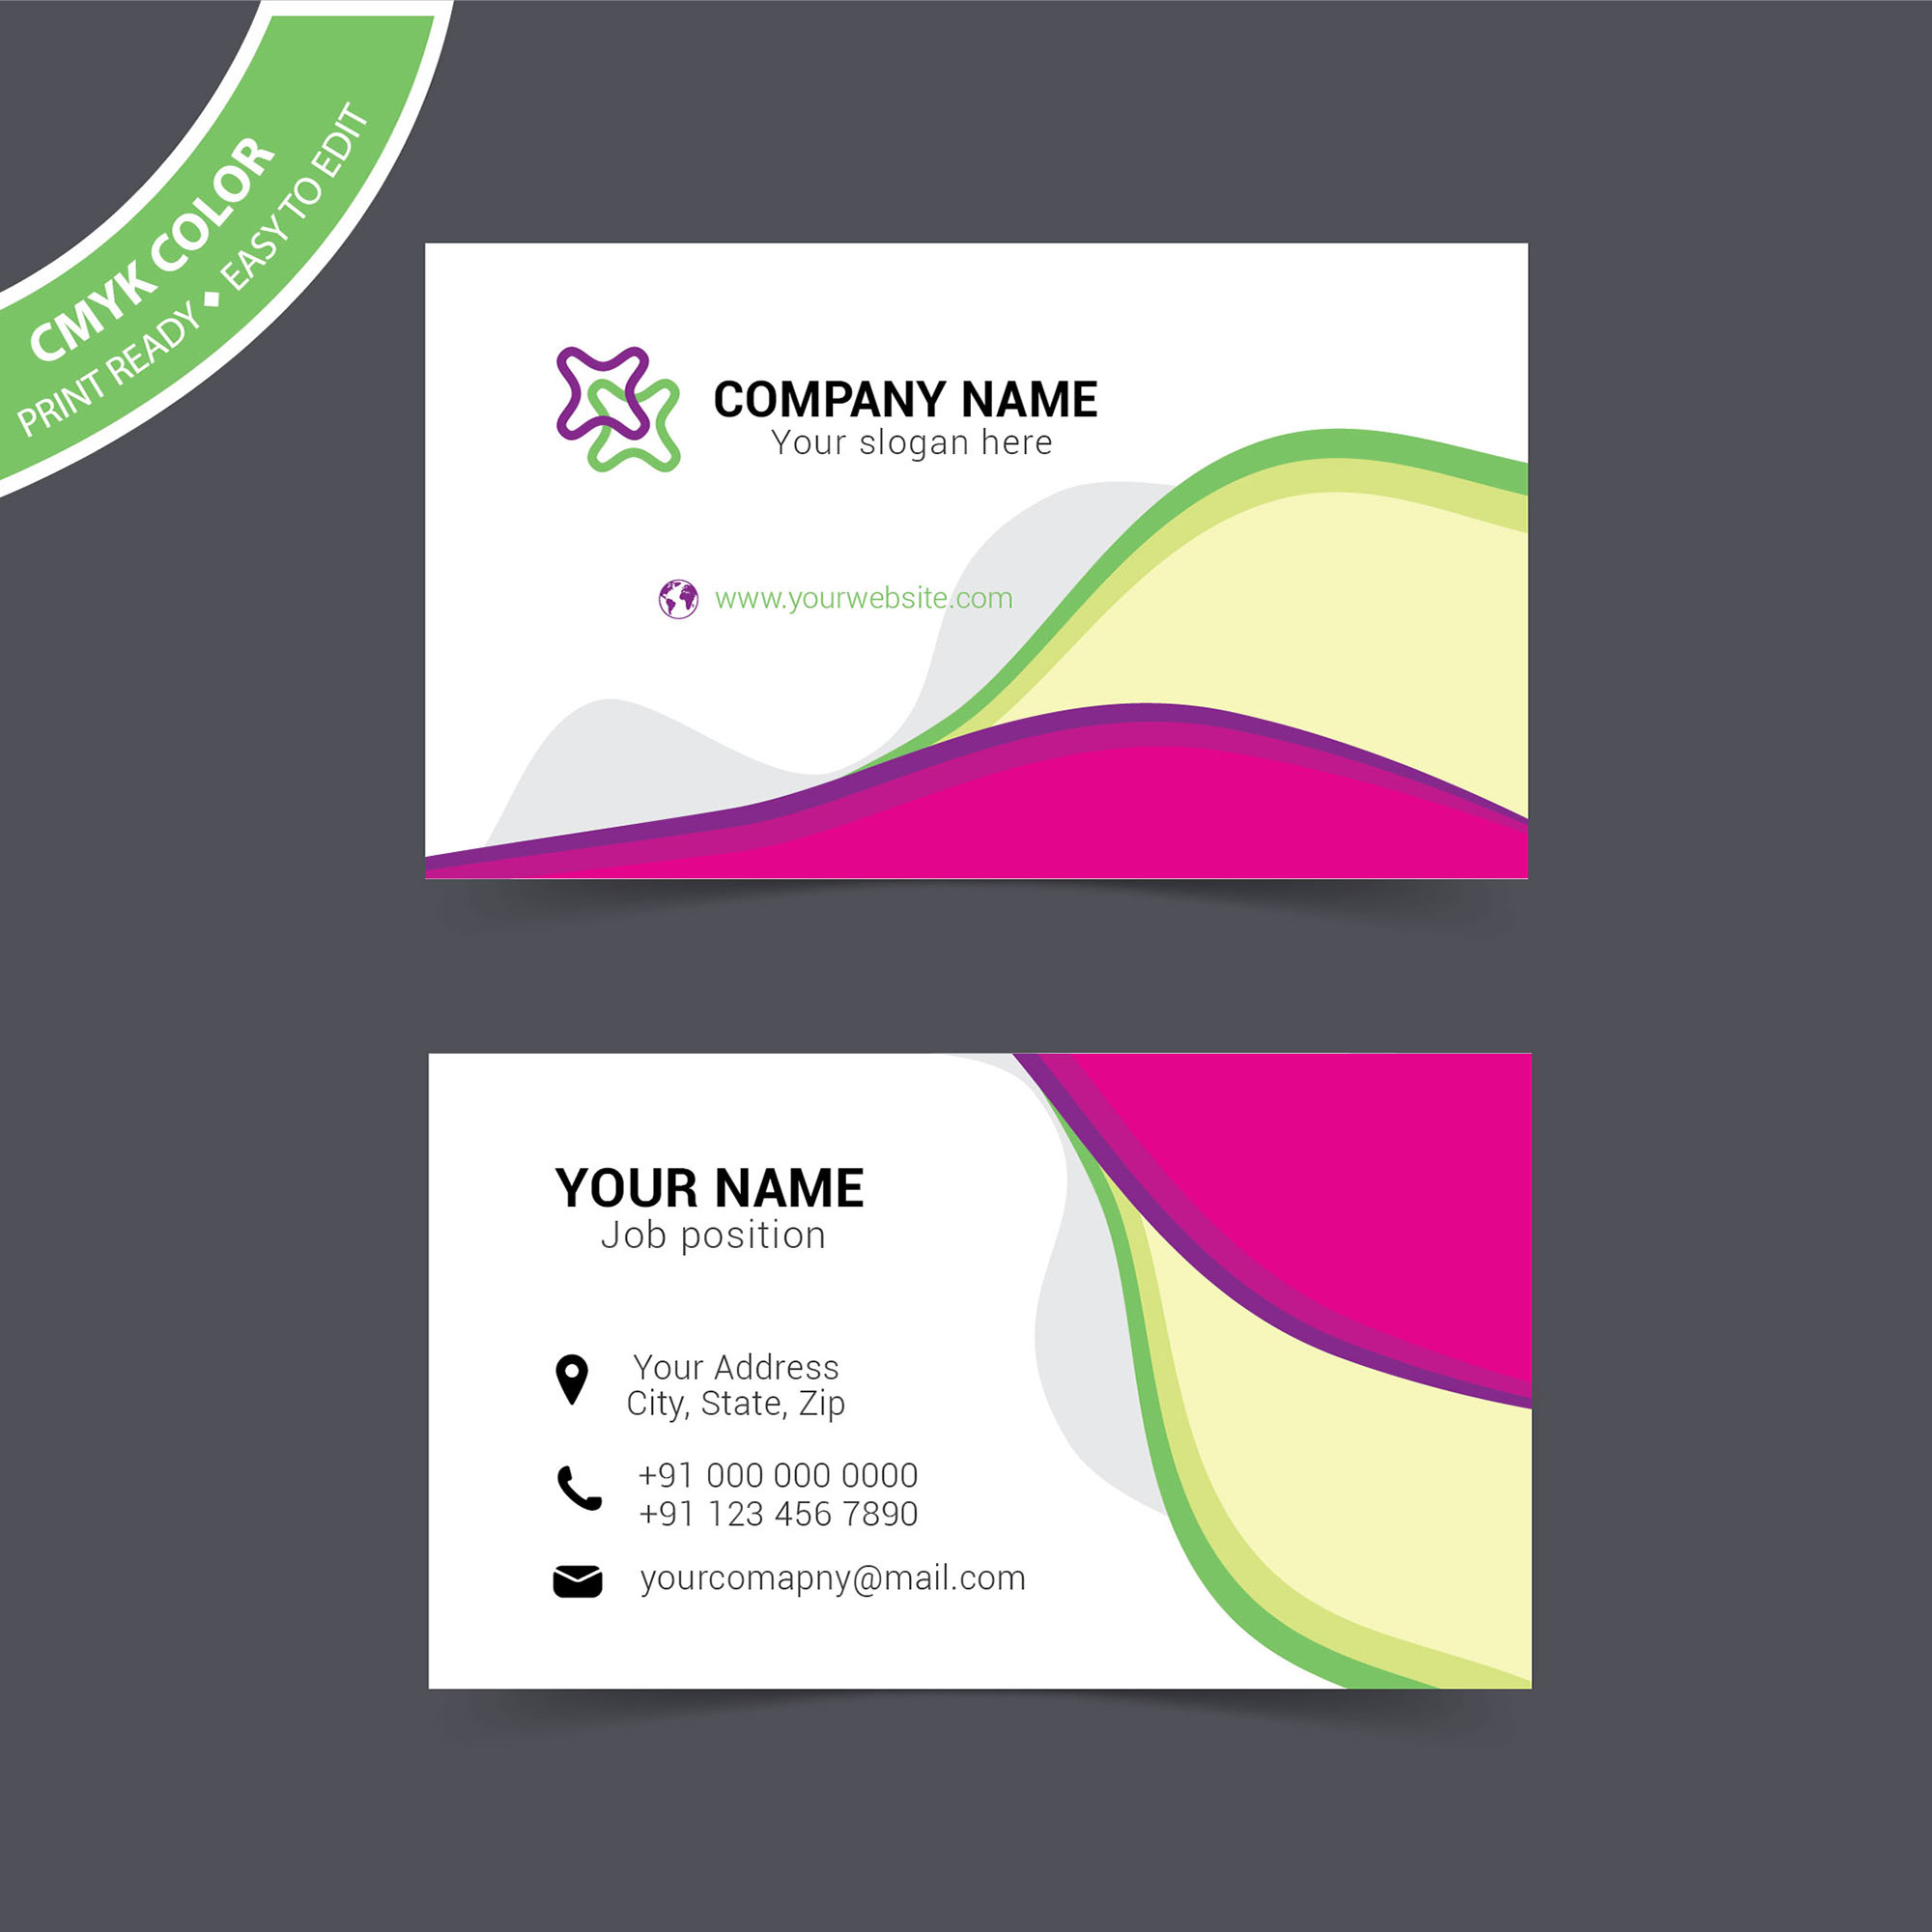 Visiting card design sample free download wisxi business card business cards business card design business card template design templates fbccfo